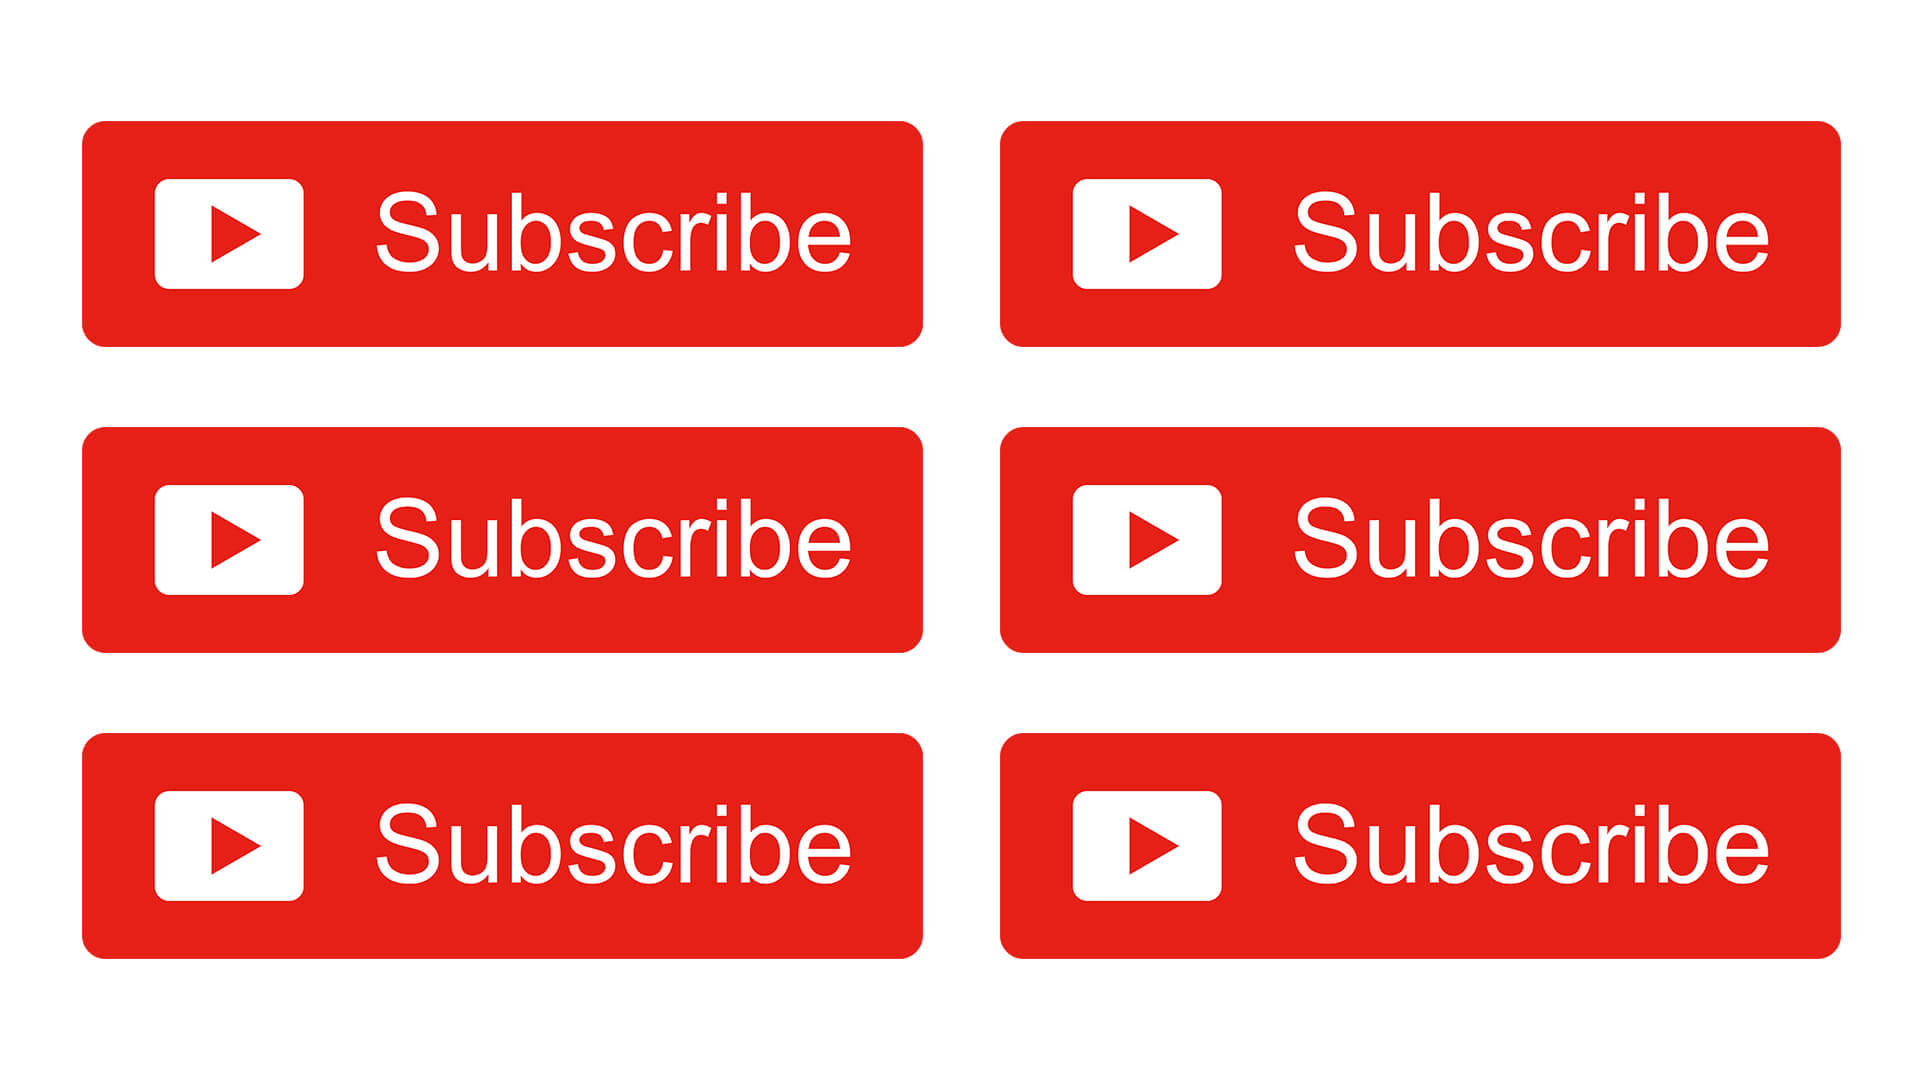 Free-YouTube-Subscribe-Button-Download-Design-Inspiration-By-AlfredoCreates-16